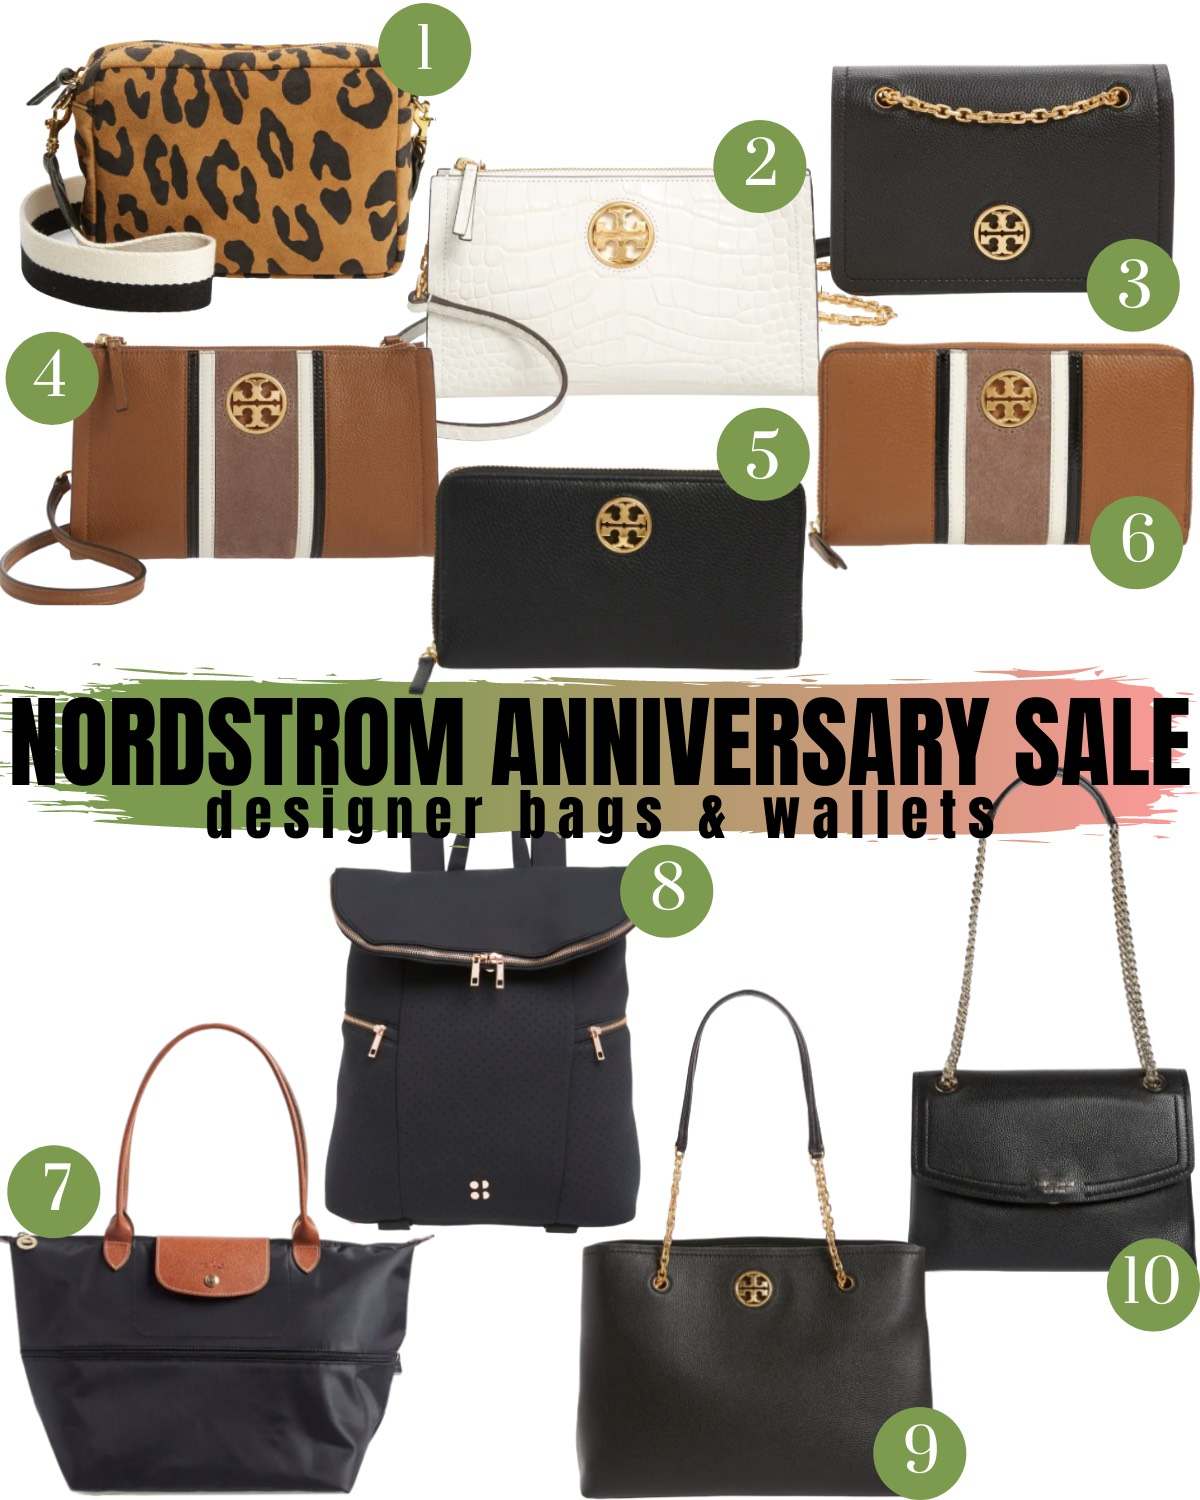 Nordstrom Anniversary Sale 2020 Bags and Wallets